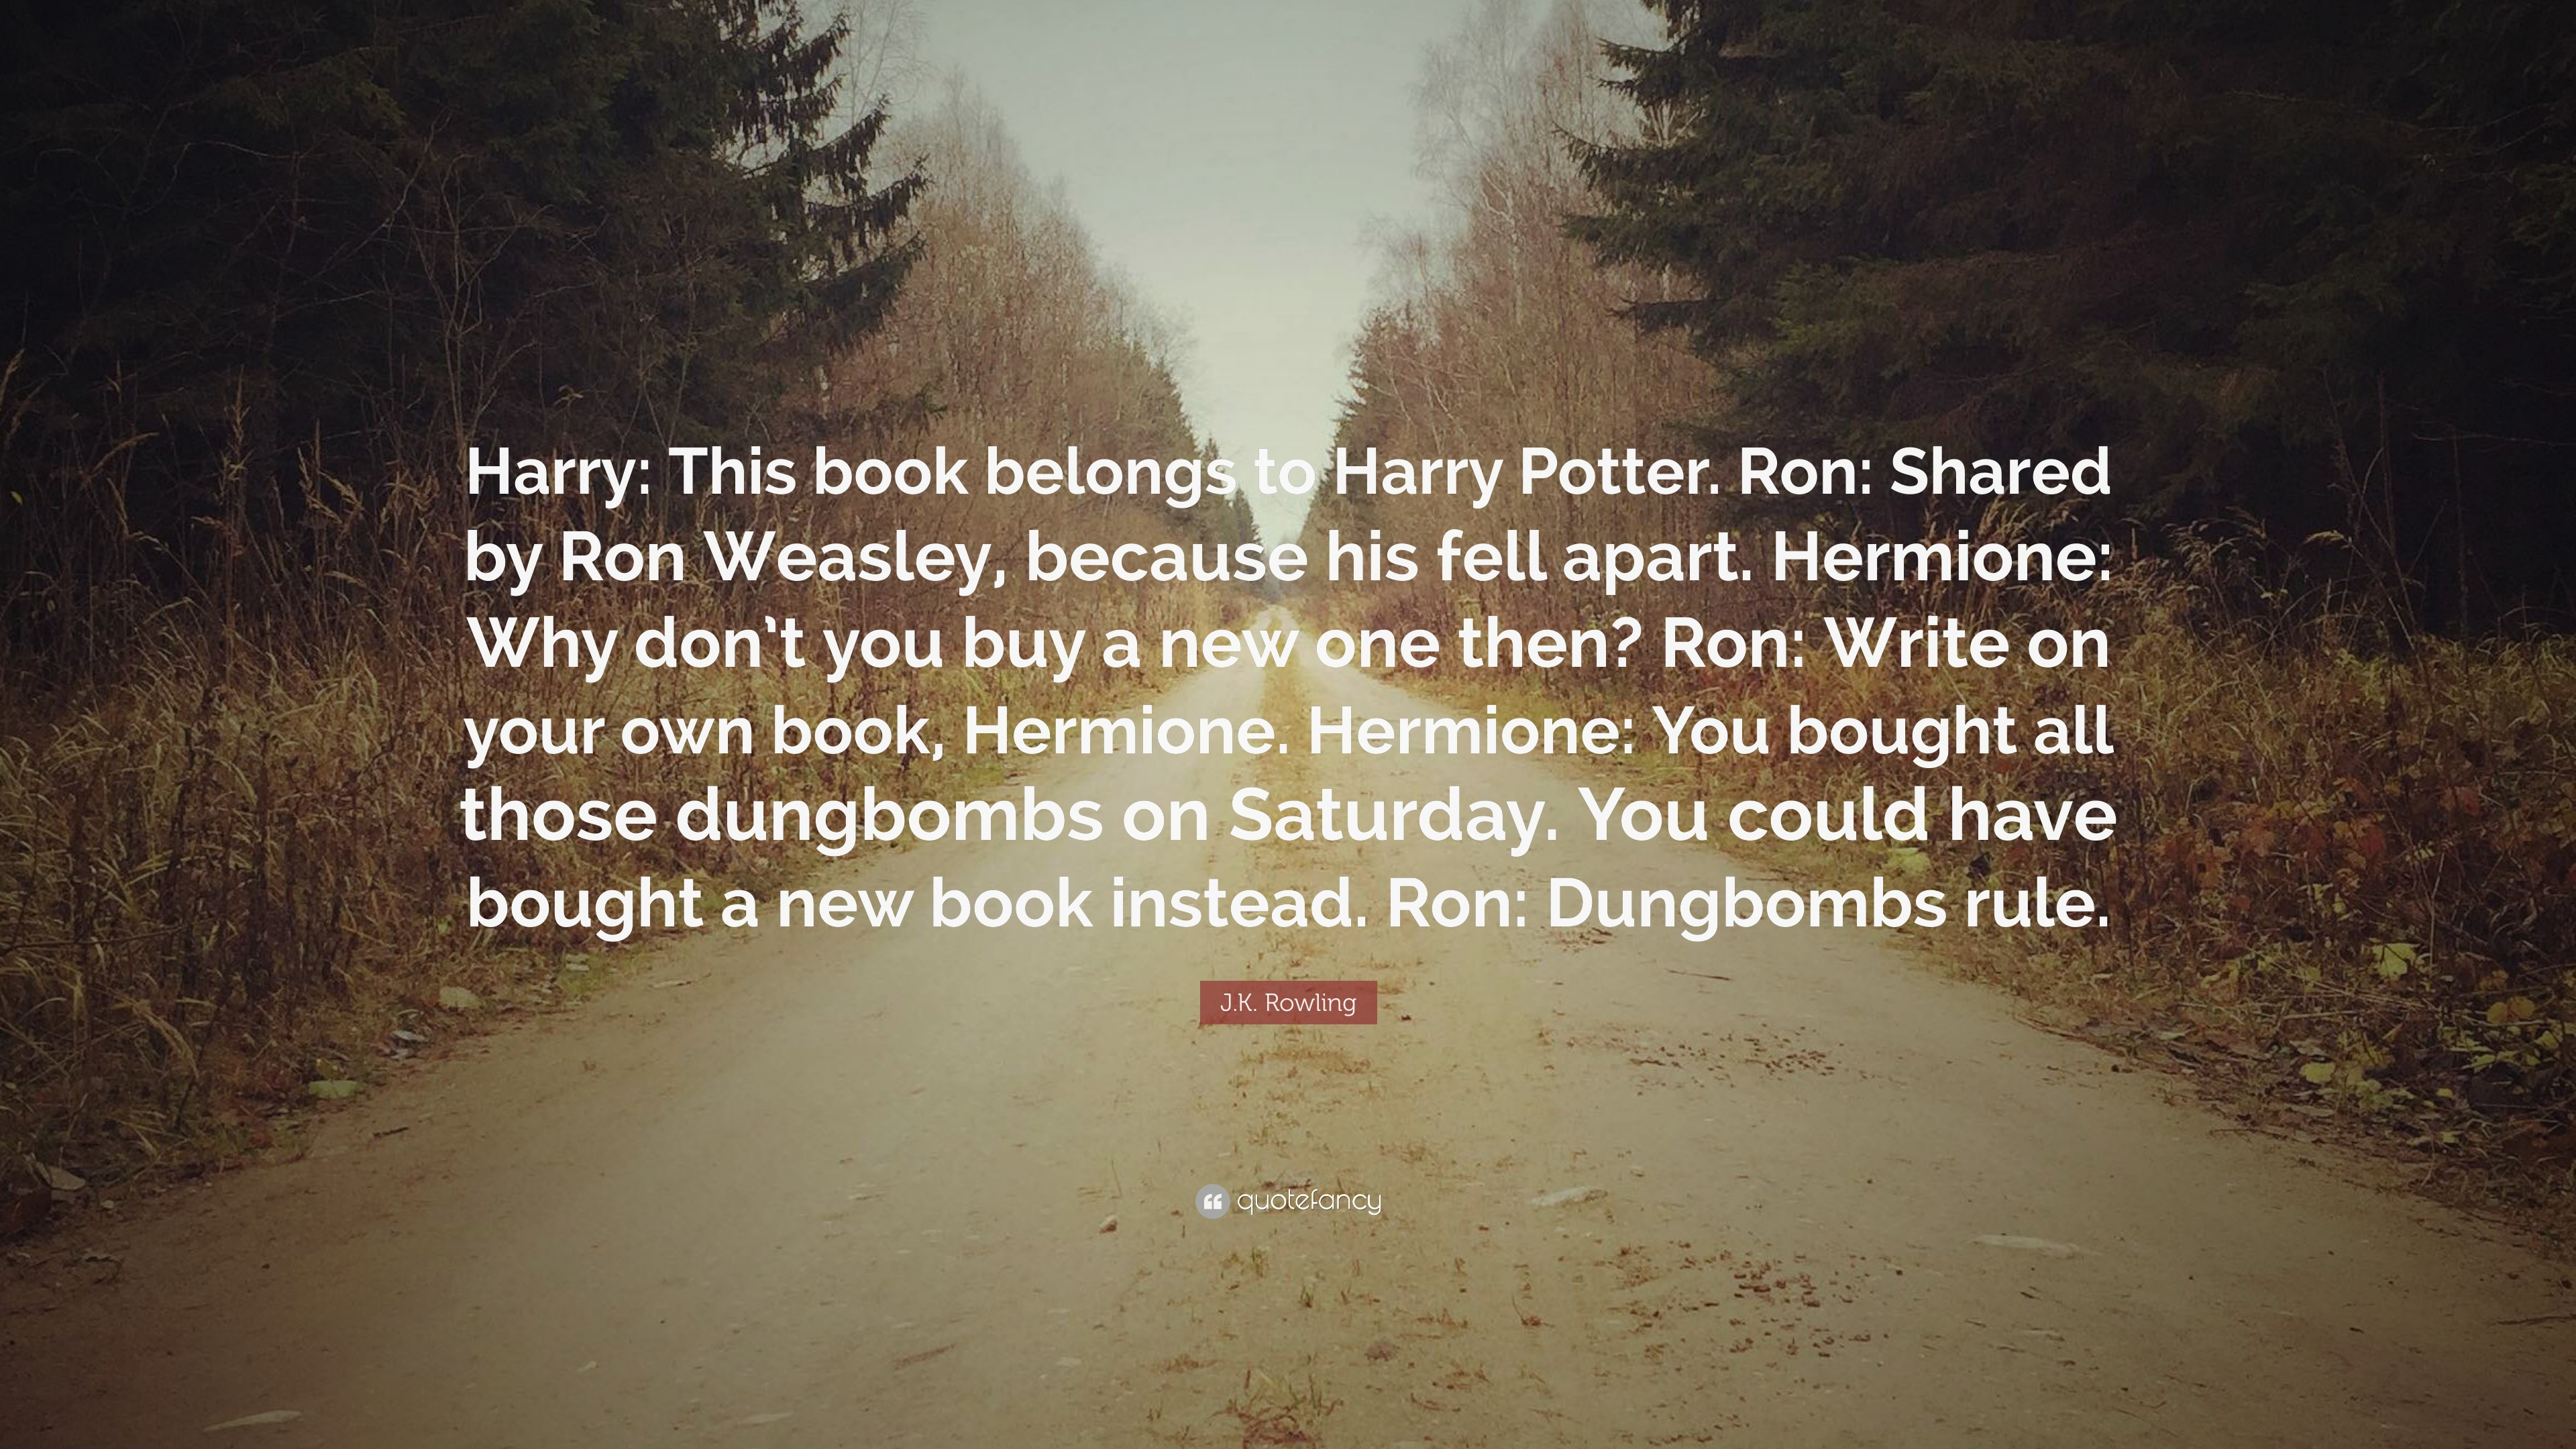 Simple Wallpaper Harry Potter Quote - 358226-J-K-Rowling-Quote-Harry-This-book-belongs-to-Harry-Potter-Ron  Collection_502093.jpg